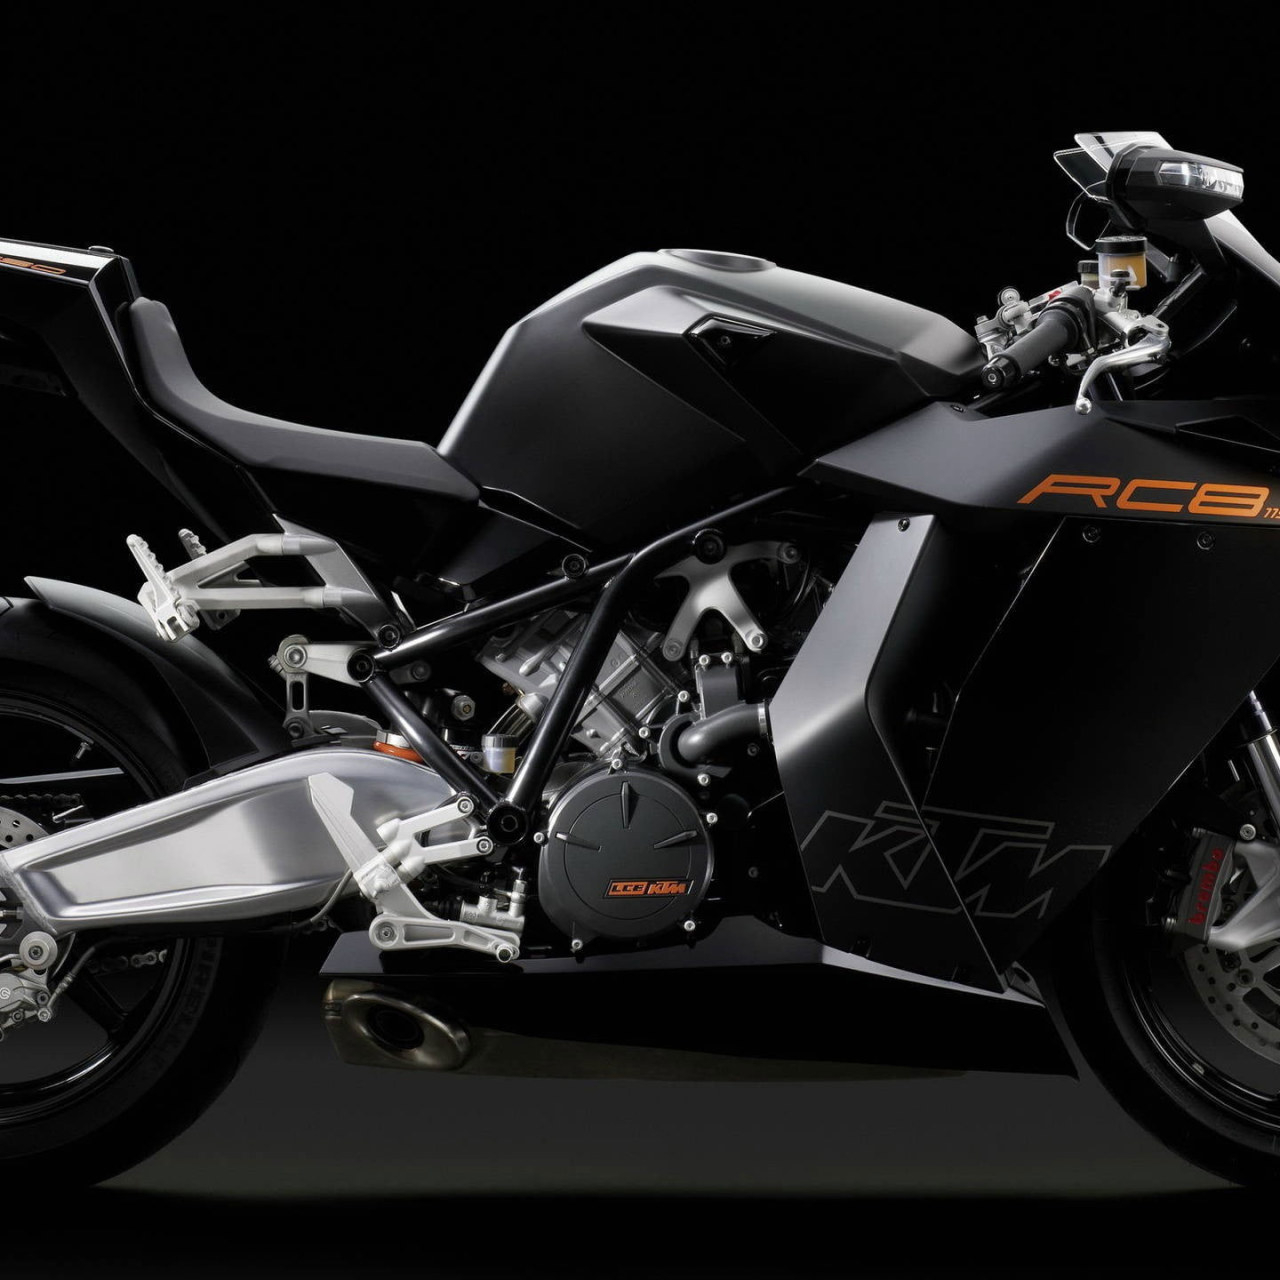 black ktm sport bike wallpaper ktm rc8 motorcycle vehicle transportation